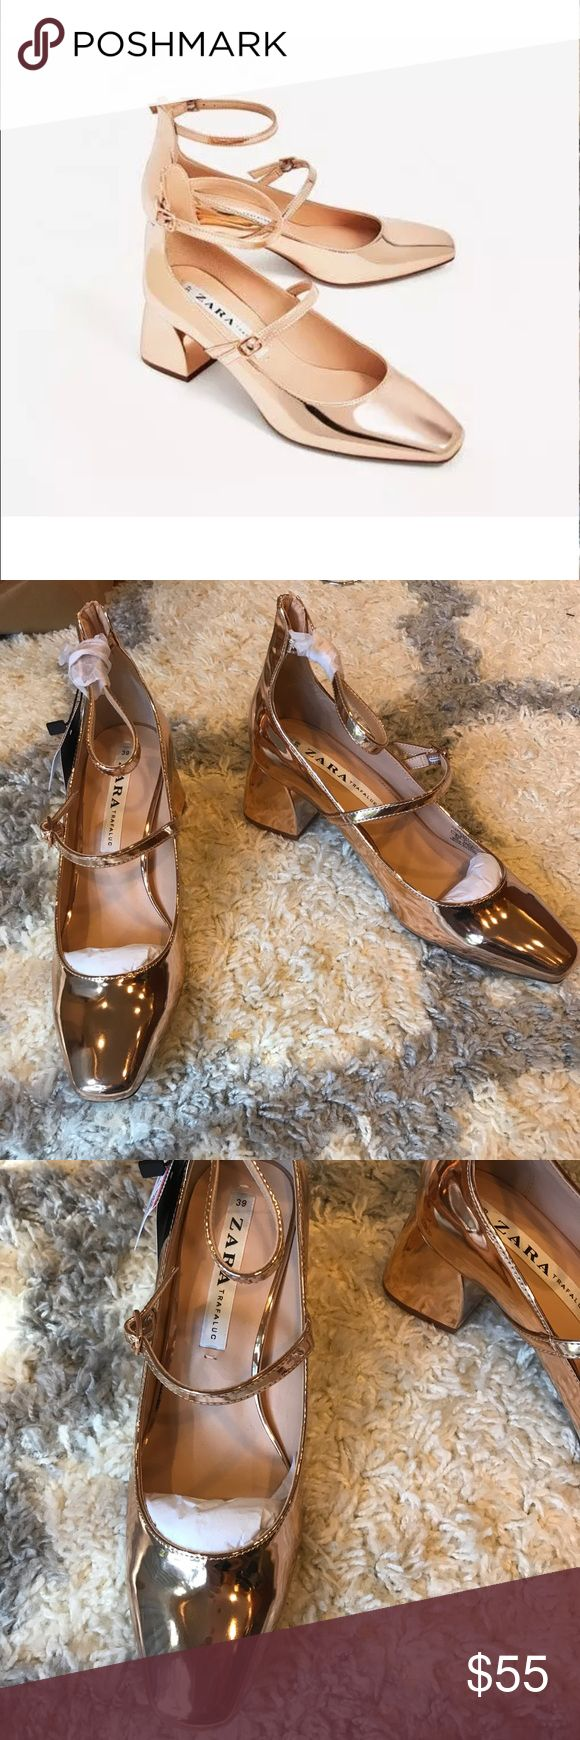 ZARA  STRAPPY HEELED BALLERINAS rose gold metallic Golden high heel shoes. Rounded toe. Block heel. Straps with buckle fastening at the ankle.  Heel height of 5.8 cm. / 2.2″  New never worn. Sold out Zara Shoes Heels